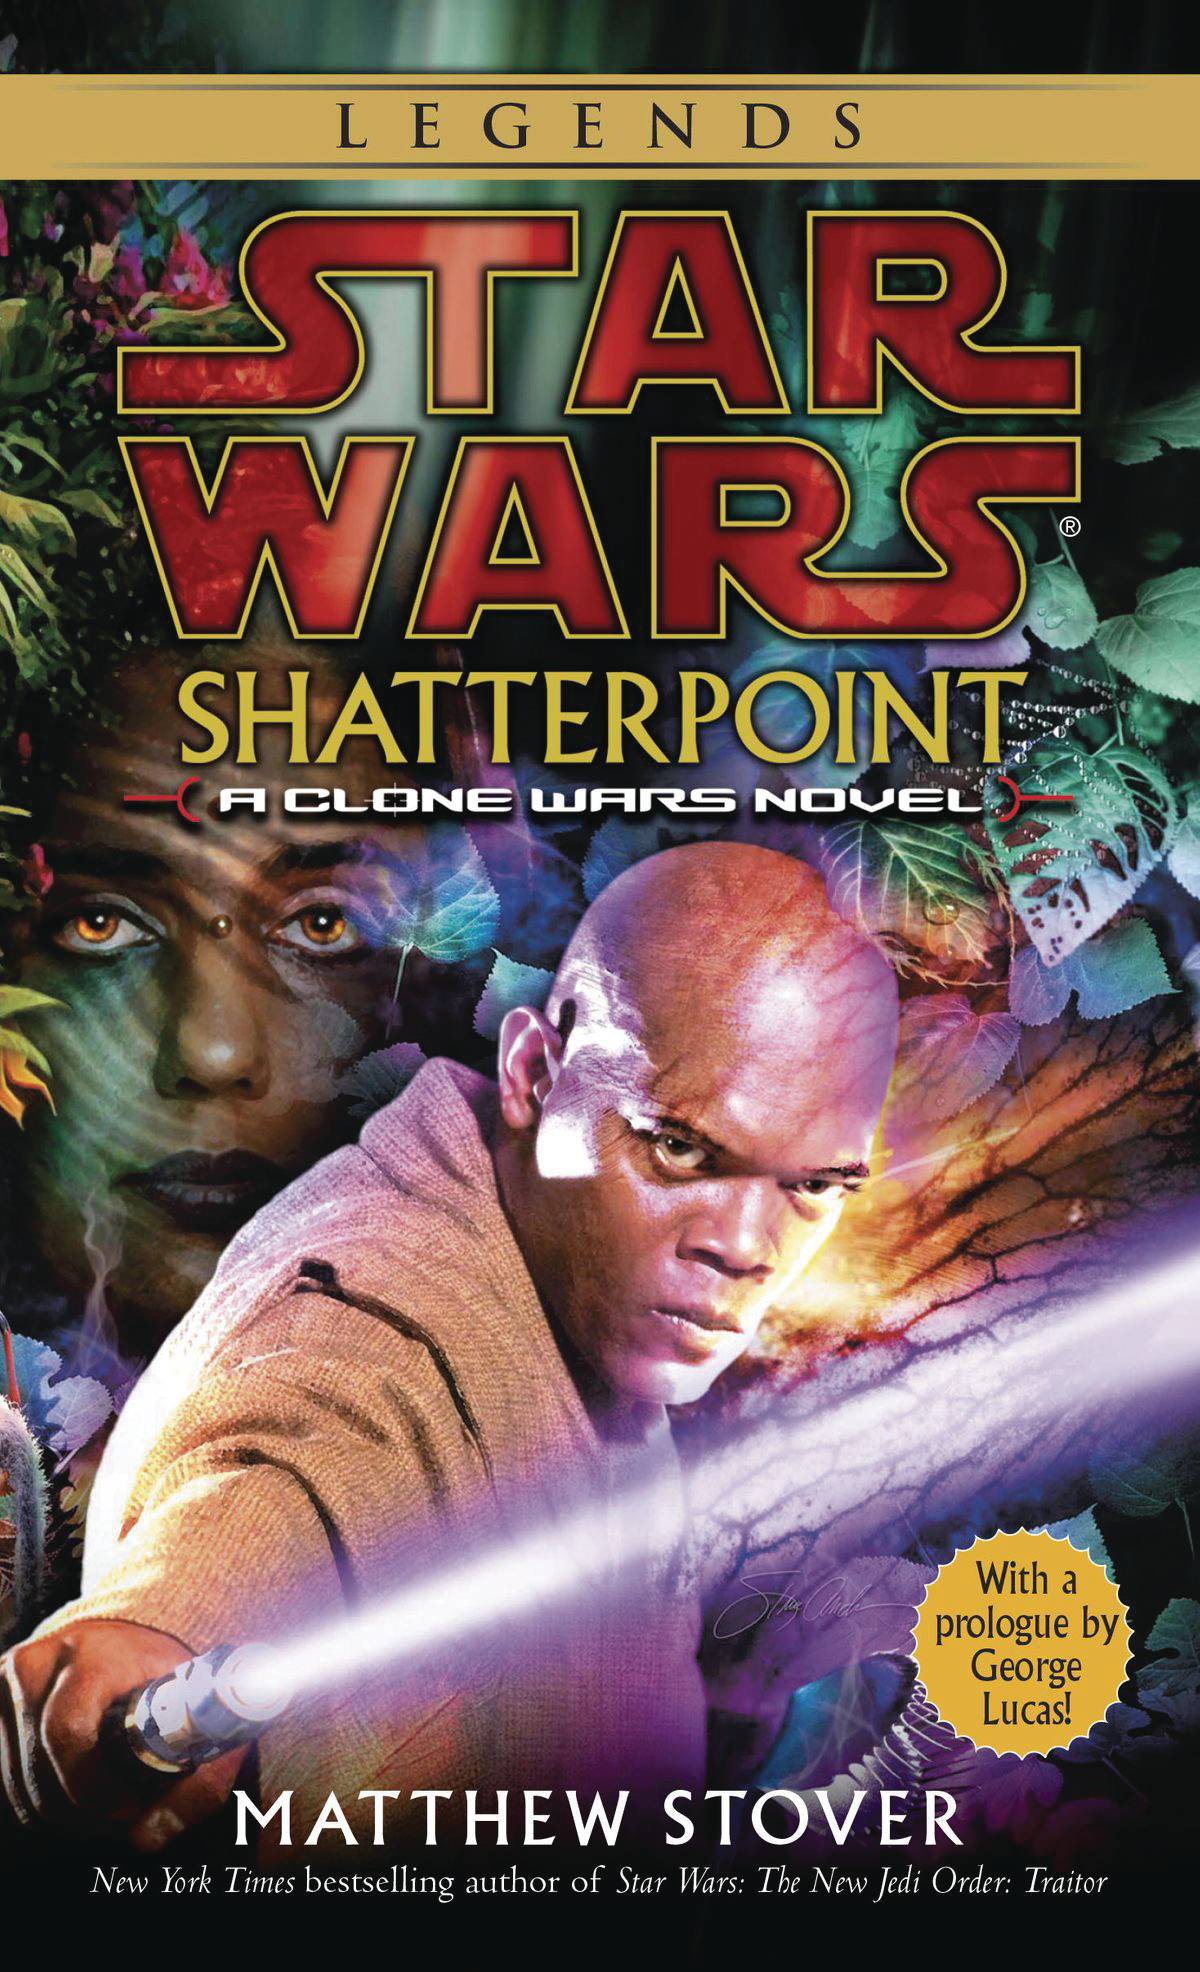 File:Shatterpoint-Legends.png